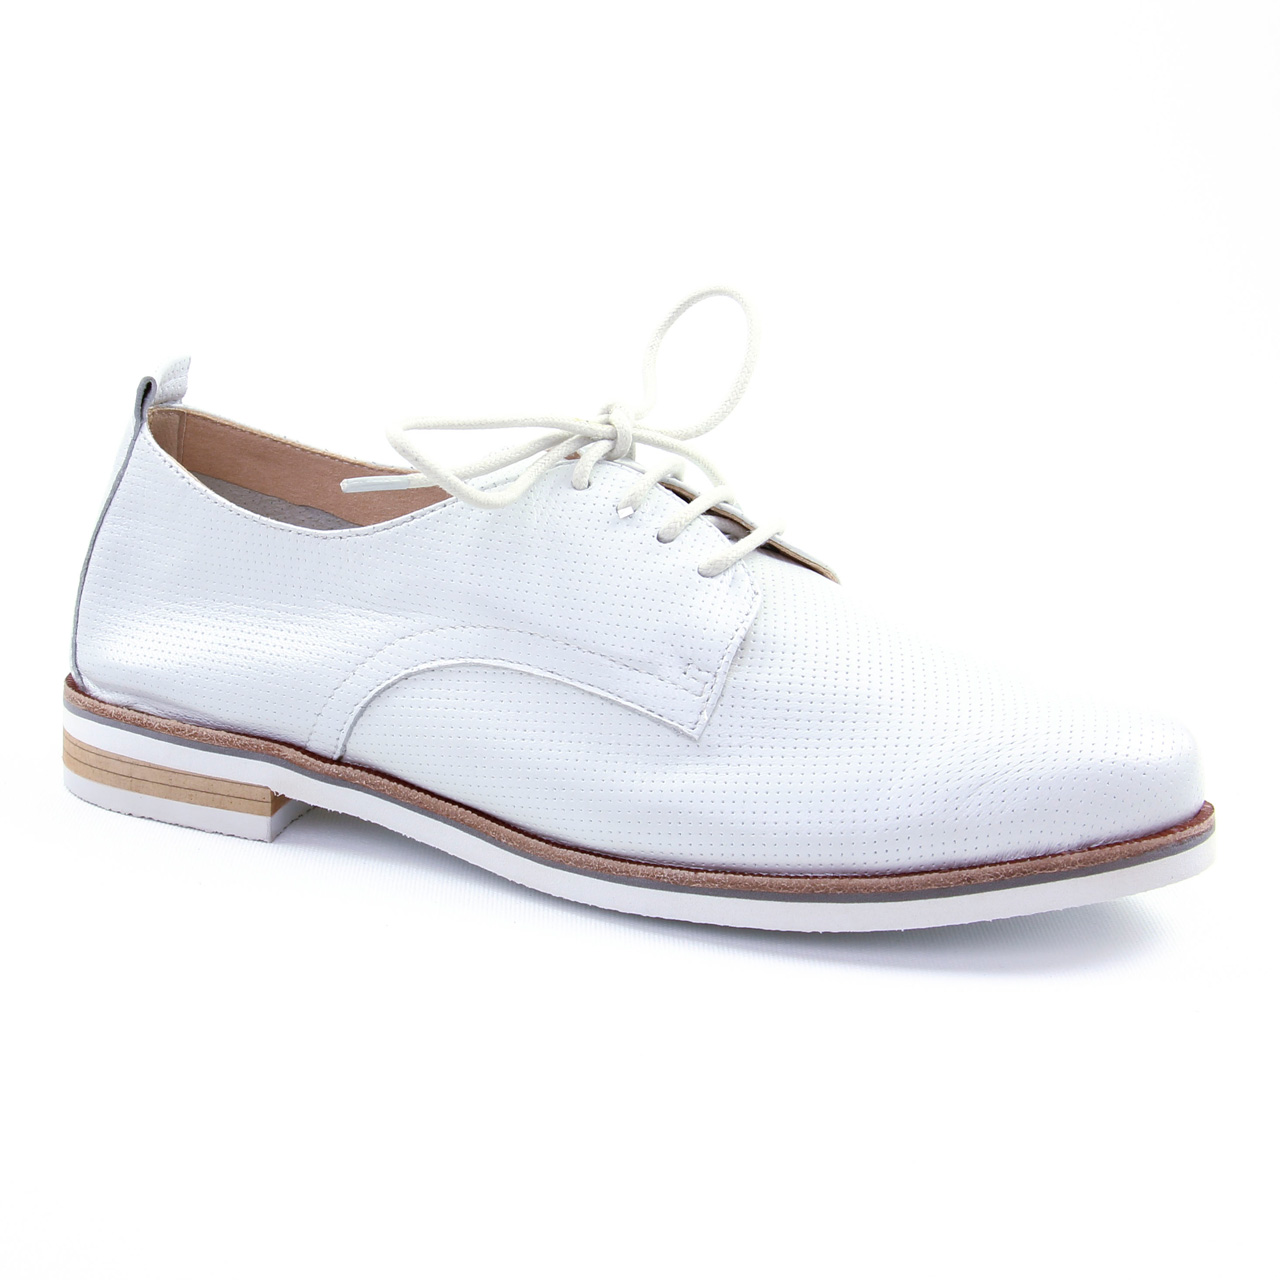 Chaussures à bout rond blanches Casual femme ZhC2xu